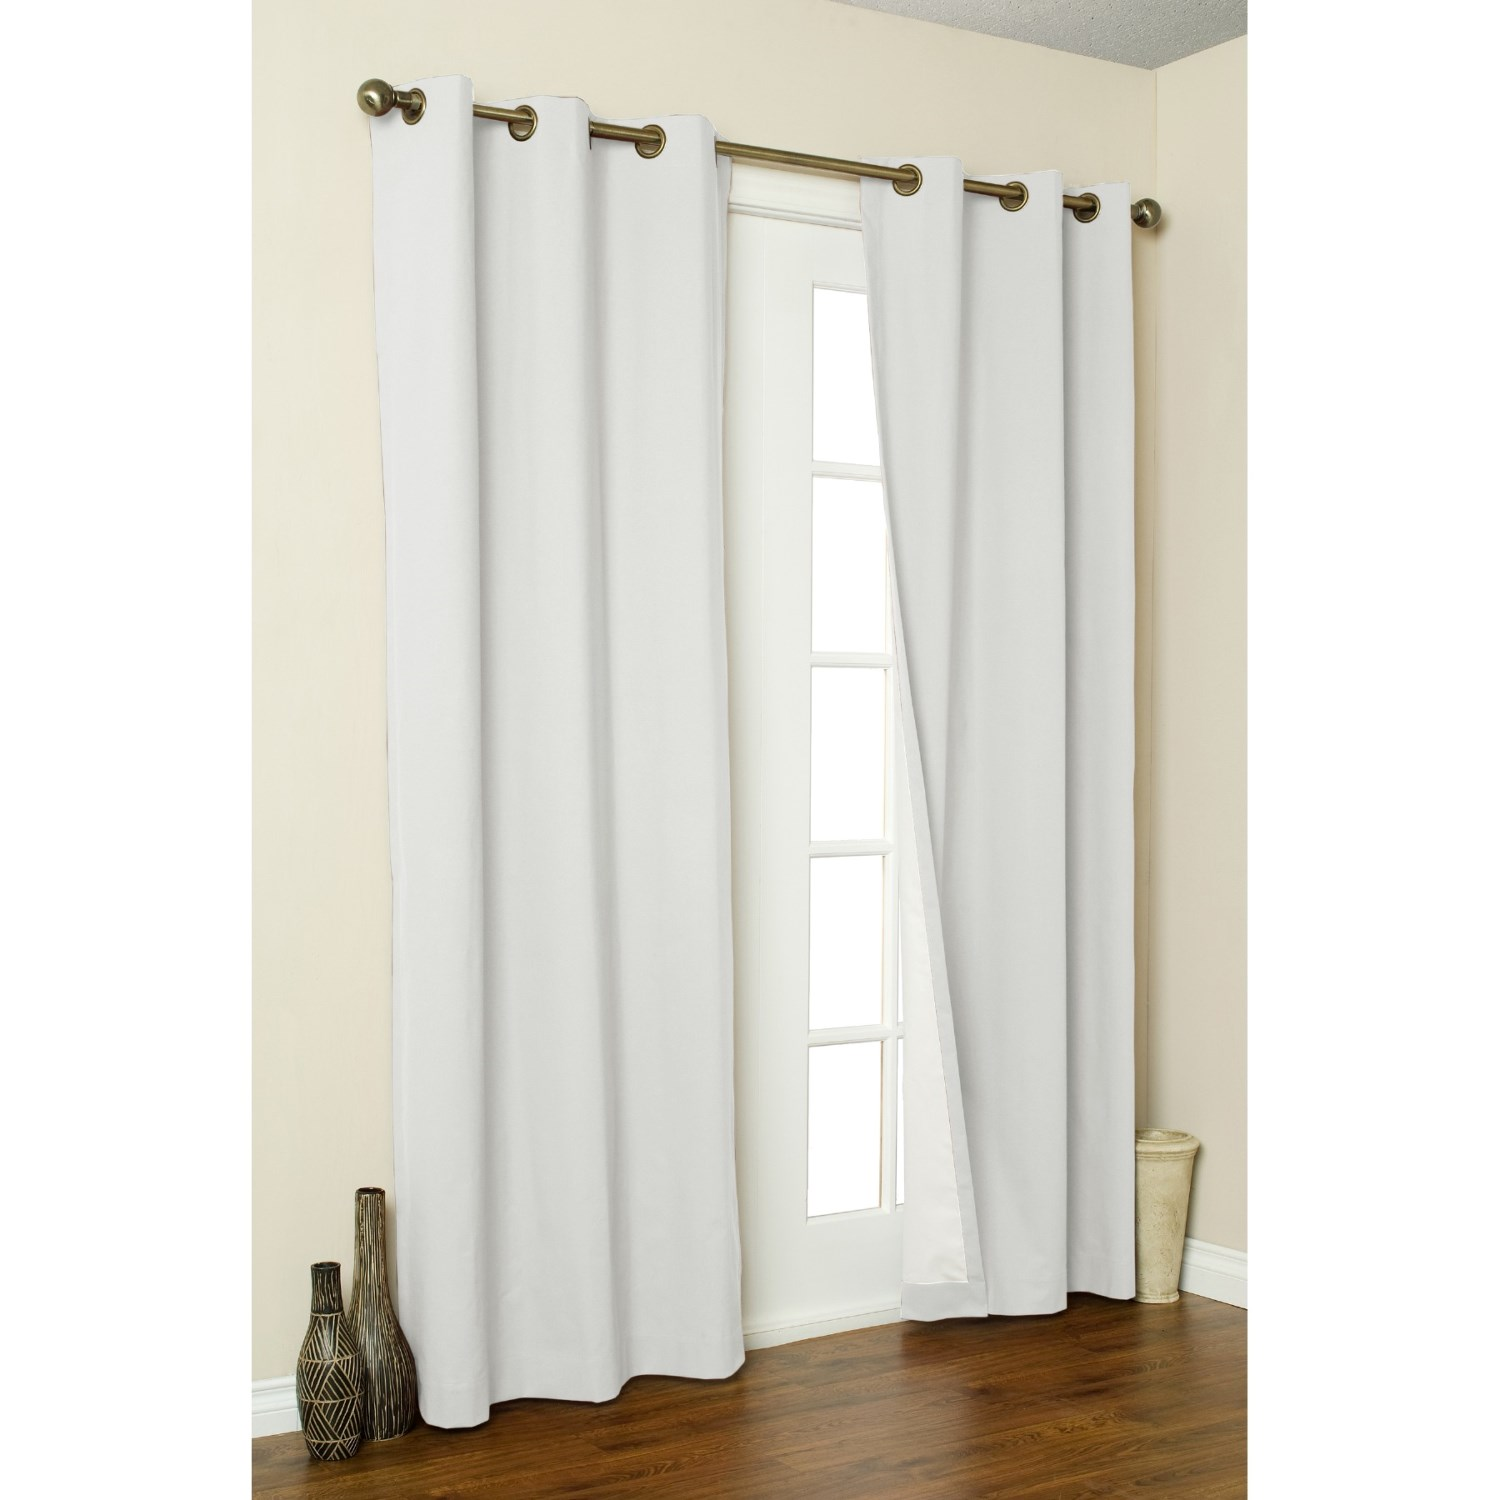 Thermalogic Weathermate Curtains 80x54 Grommet Top